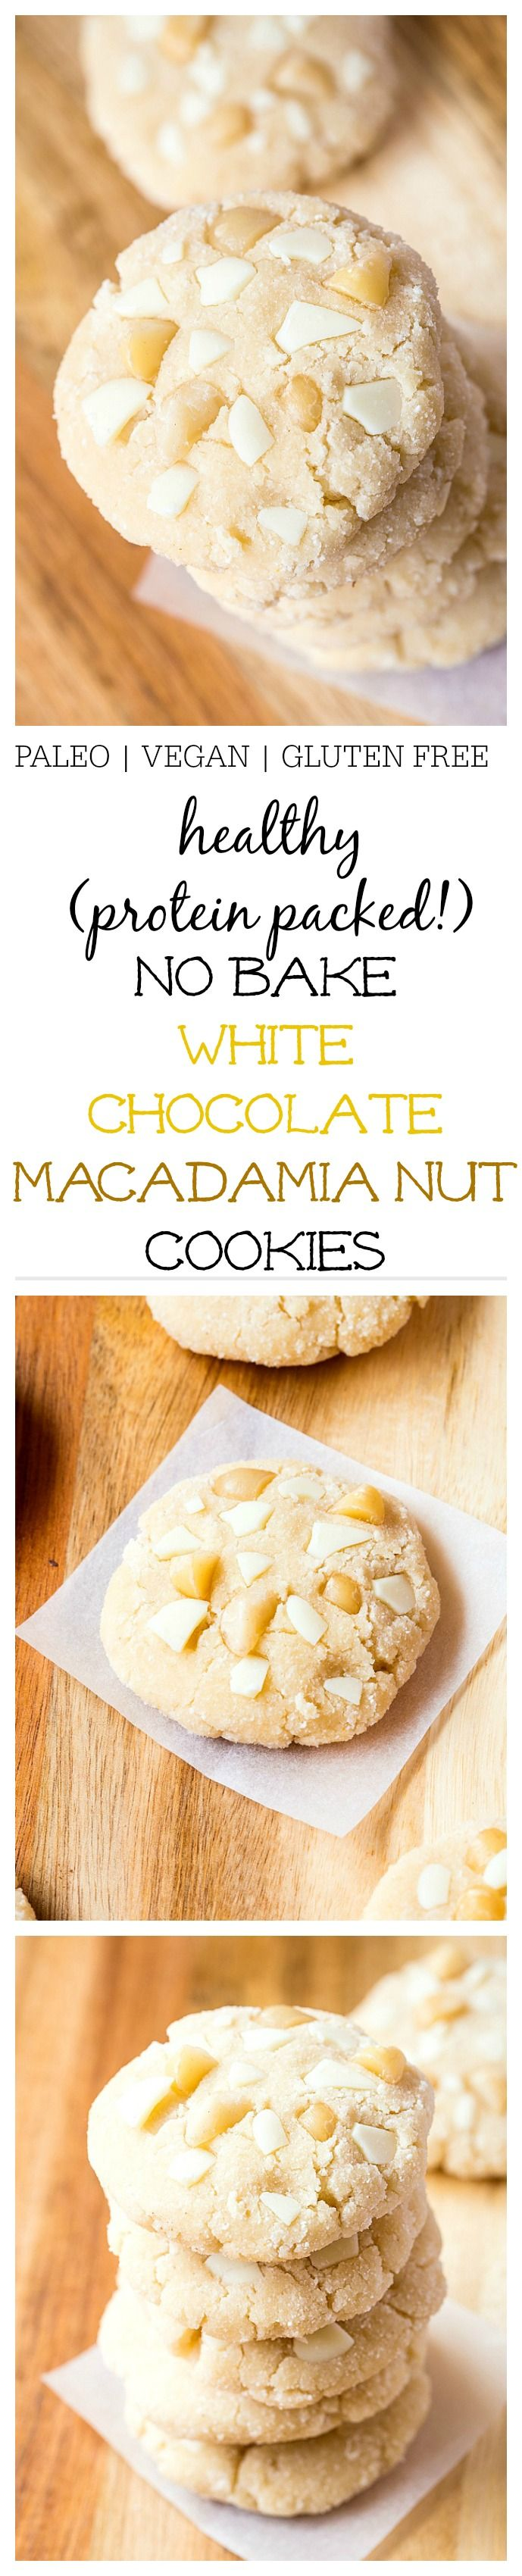 Healthy No Bake White Chocolate Macadamia Nut Cookies- Inspired by Subway's infamous cookies, 1 bowl + 10 minutes- Vegan, GF + Paleo option! @Thebigmansworld - thebigmansworld.com